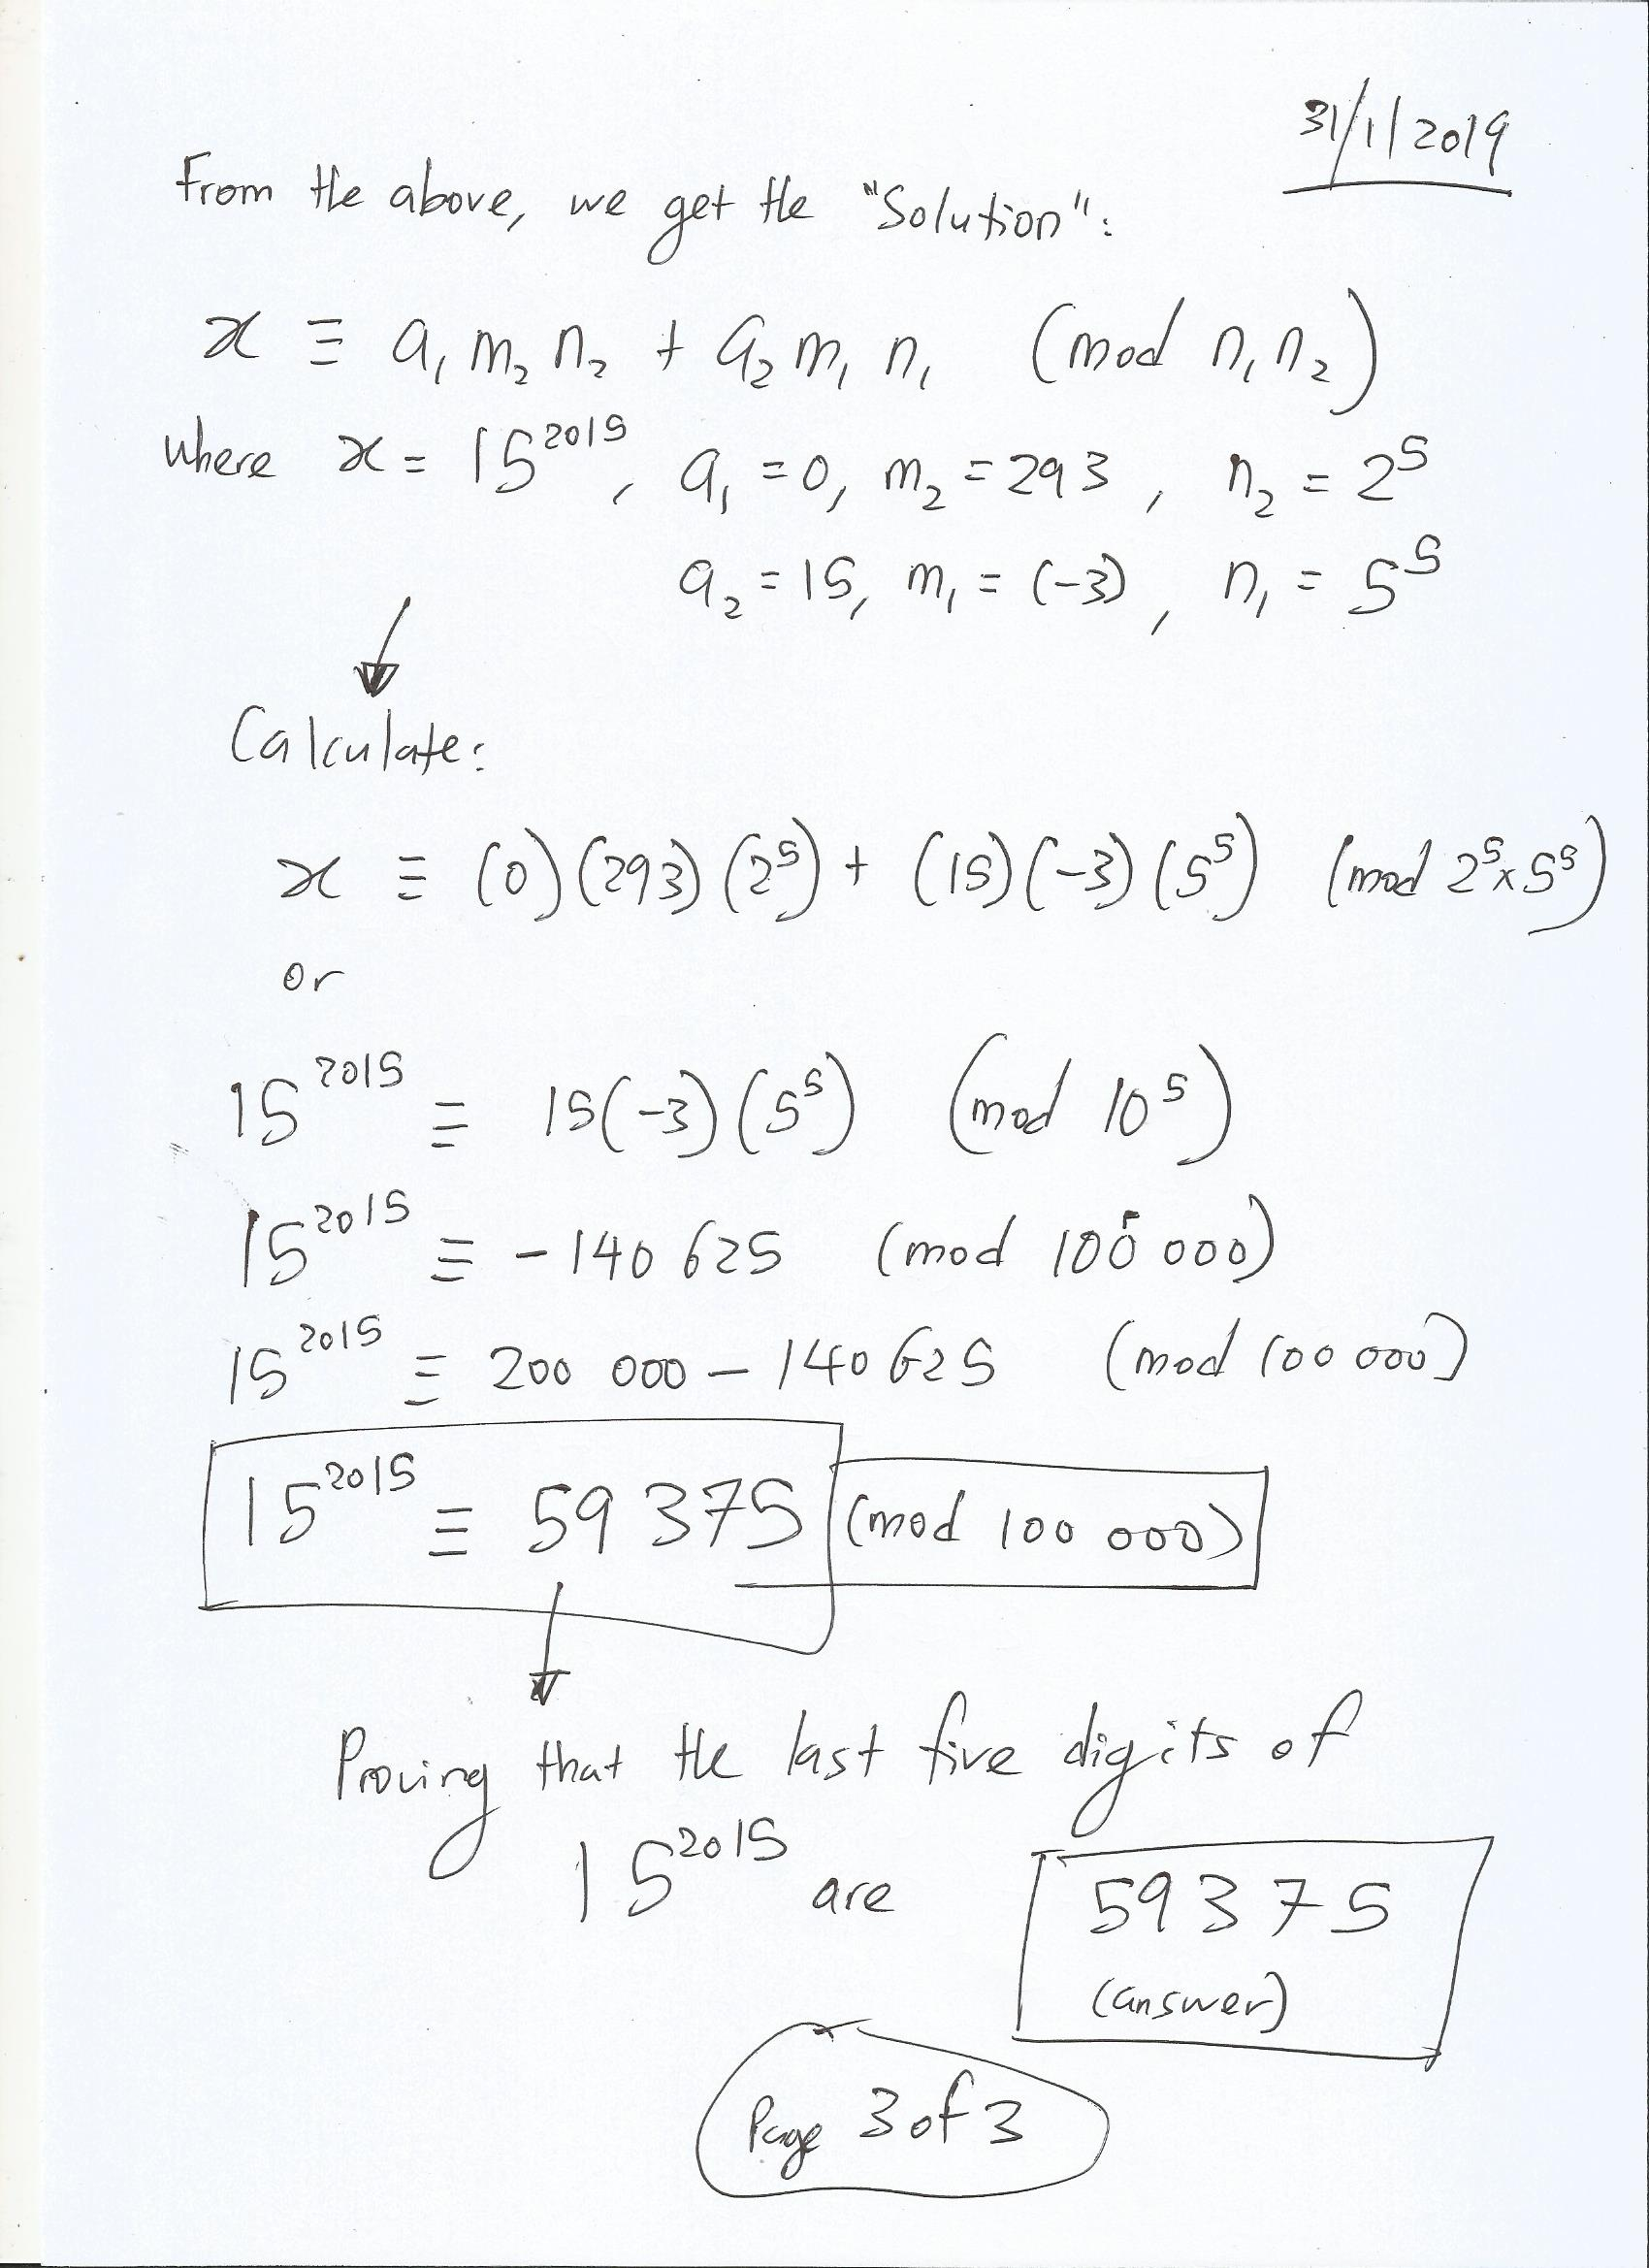 Chinese Remainder Theorem to find the Last Five Digits of 15^2015